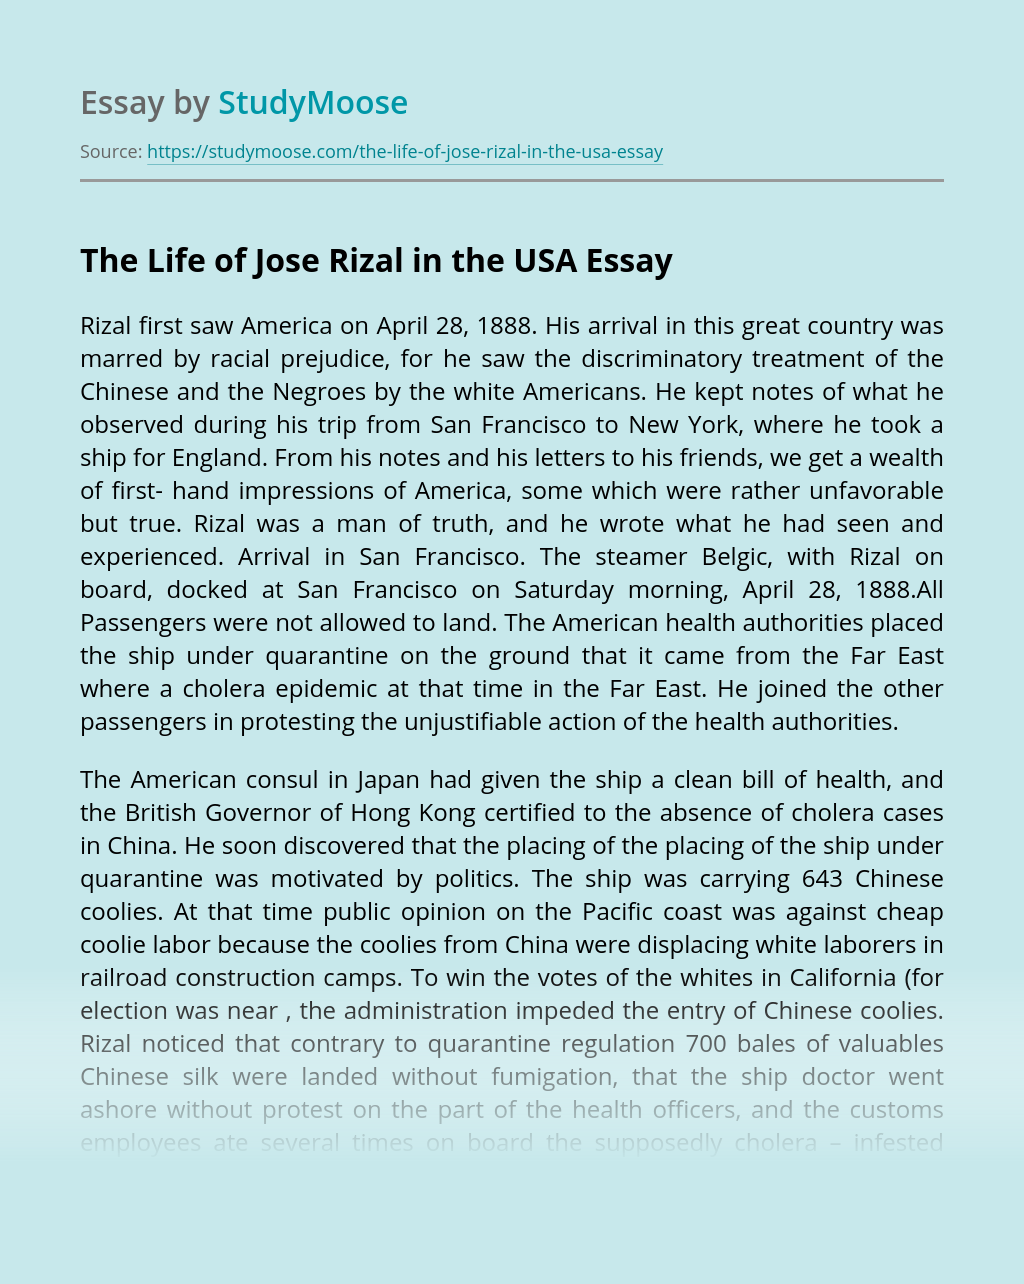 The Life of Jose Rizal in the USA